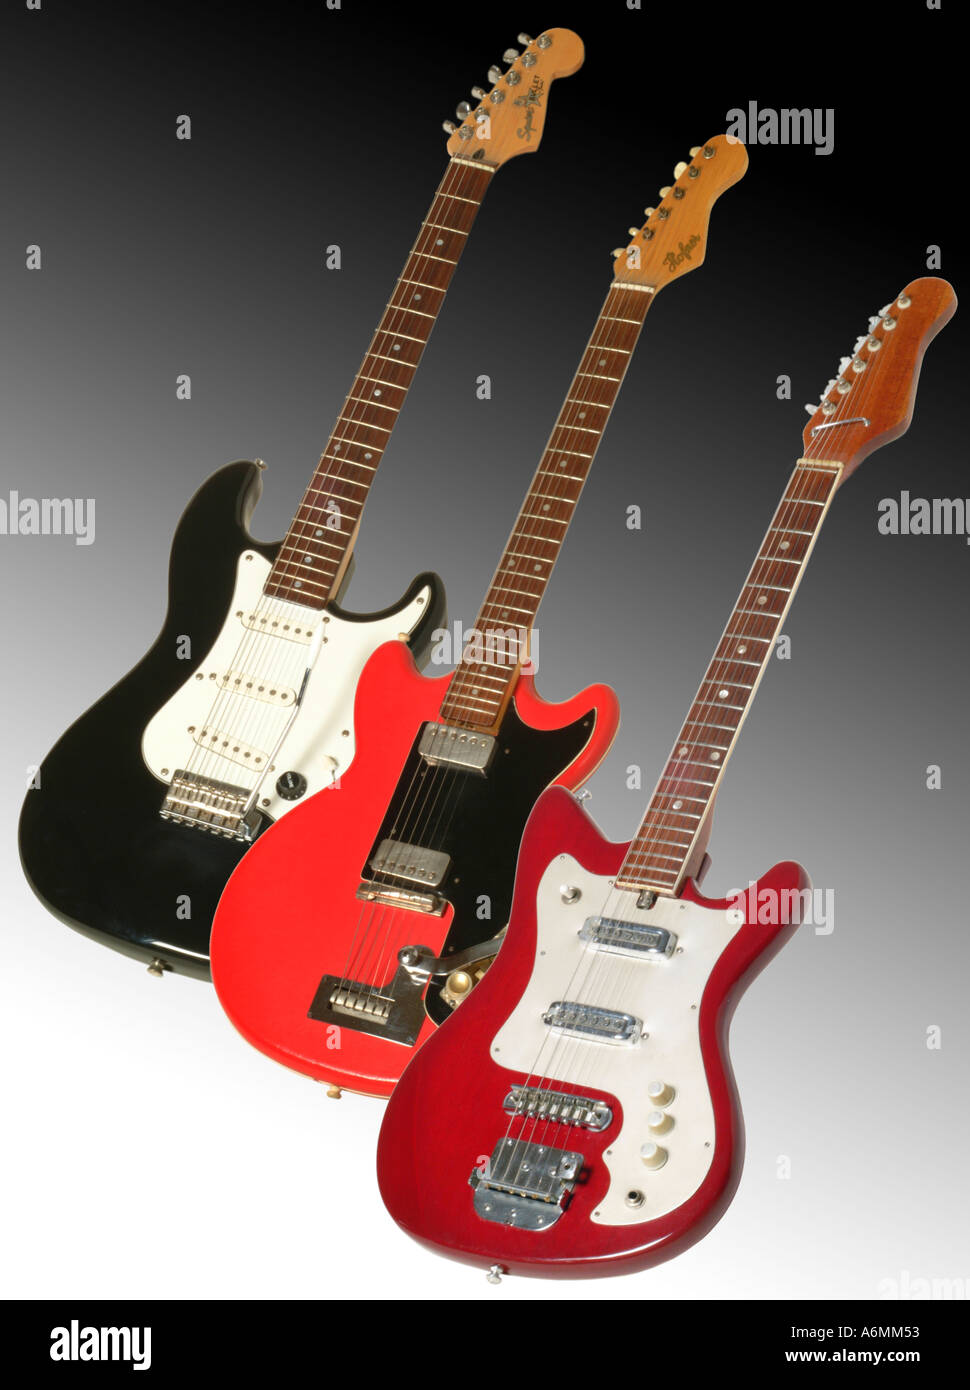 3 different electric guitars on black white grad background - Stock Image